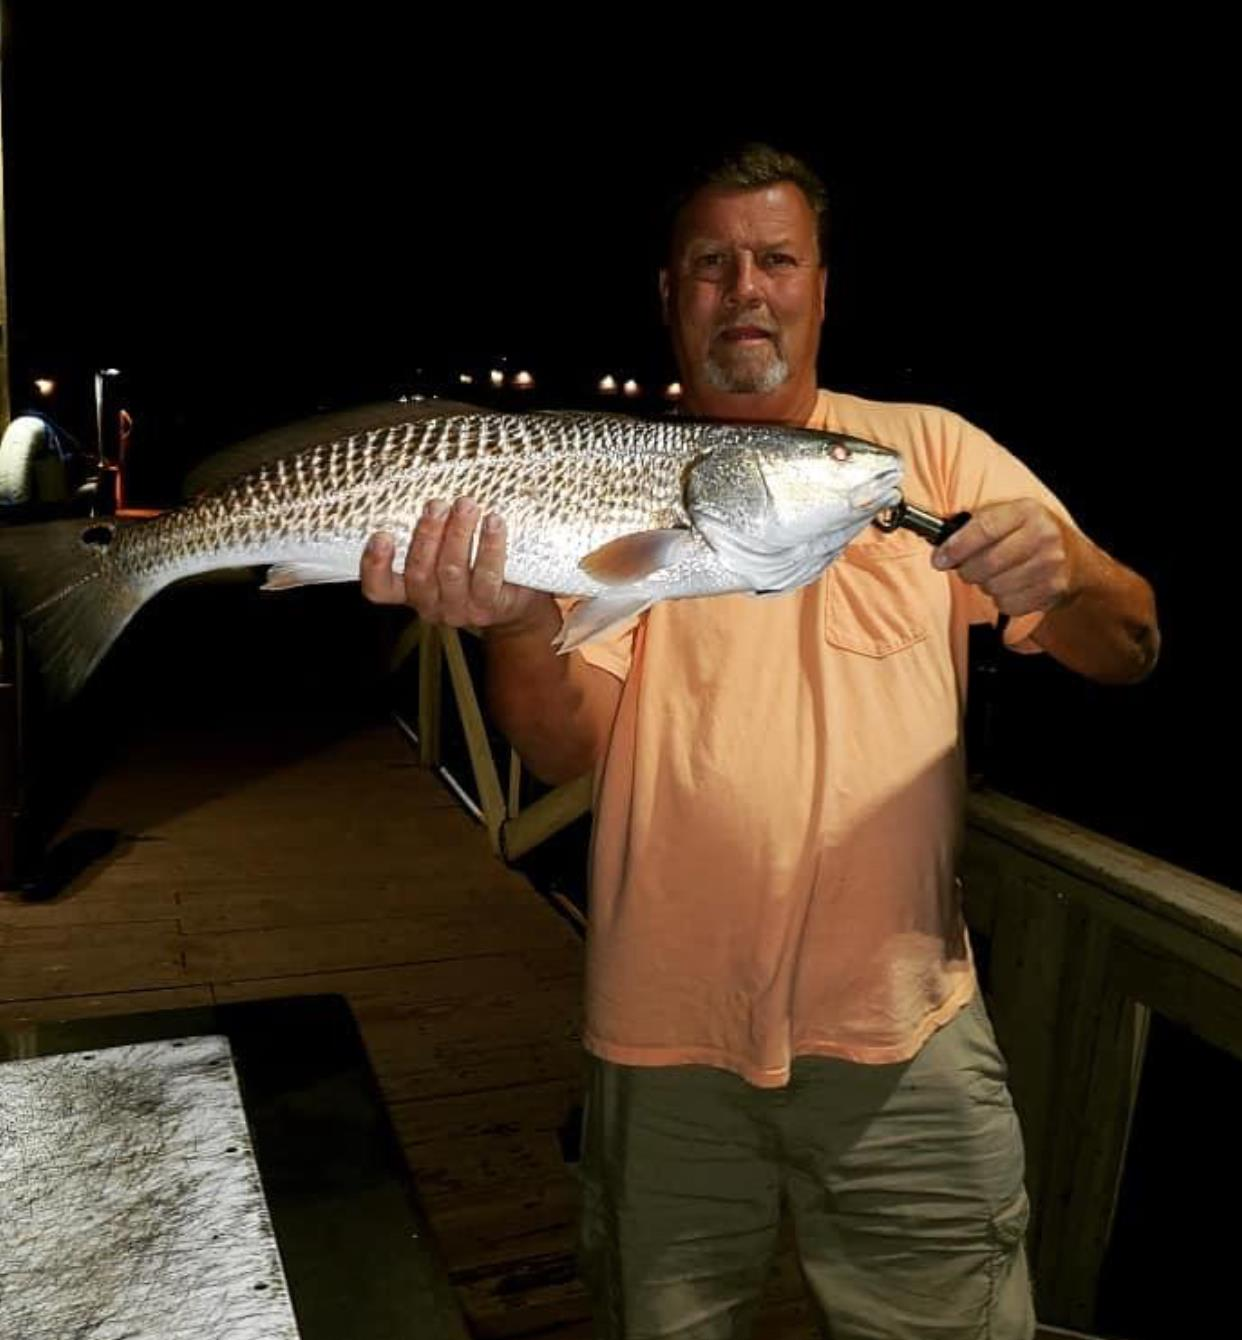 Caught while fishing on our pier!